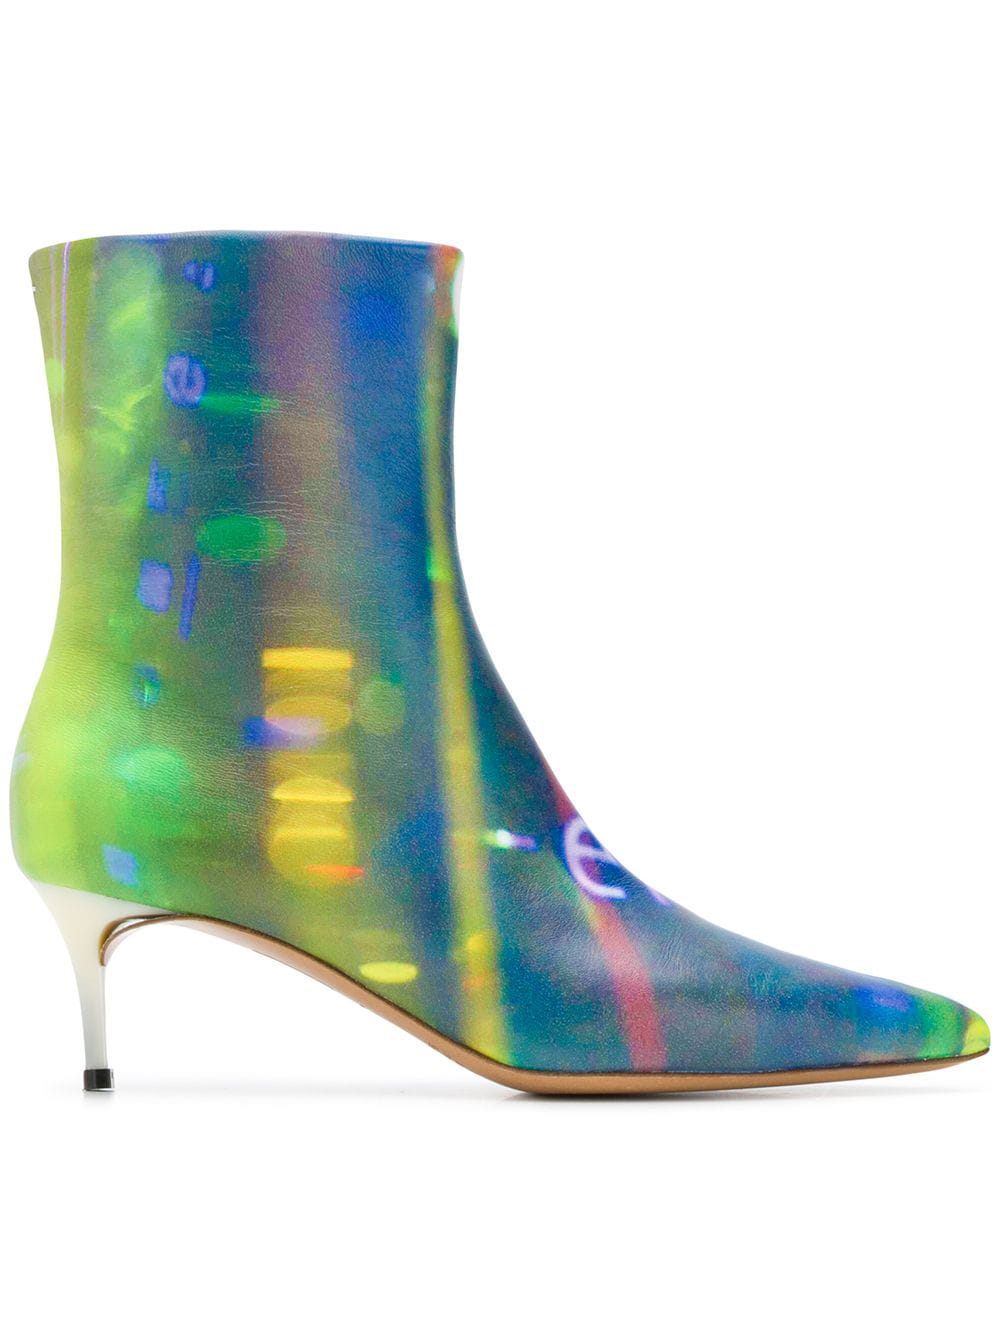 802afa17fce Maison Margiela After Party Printed Kitten-Heel Ankle Boots In Blue ...